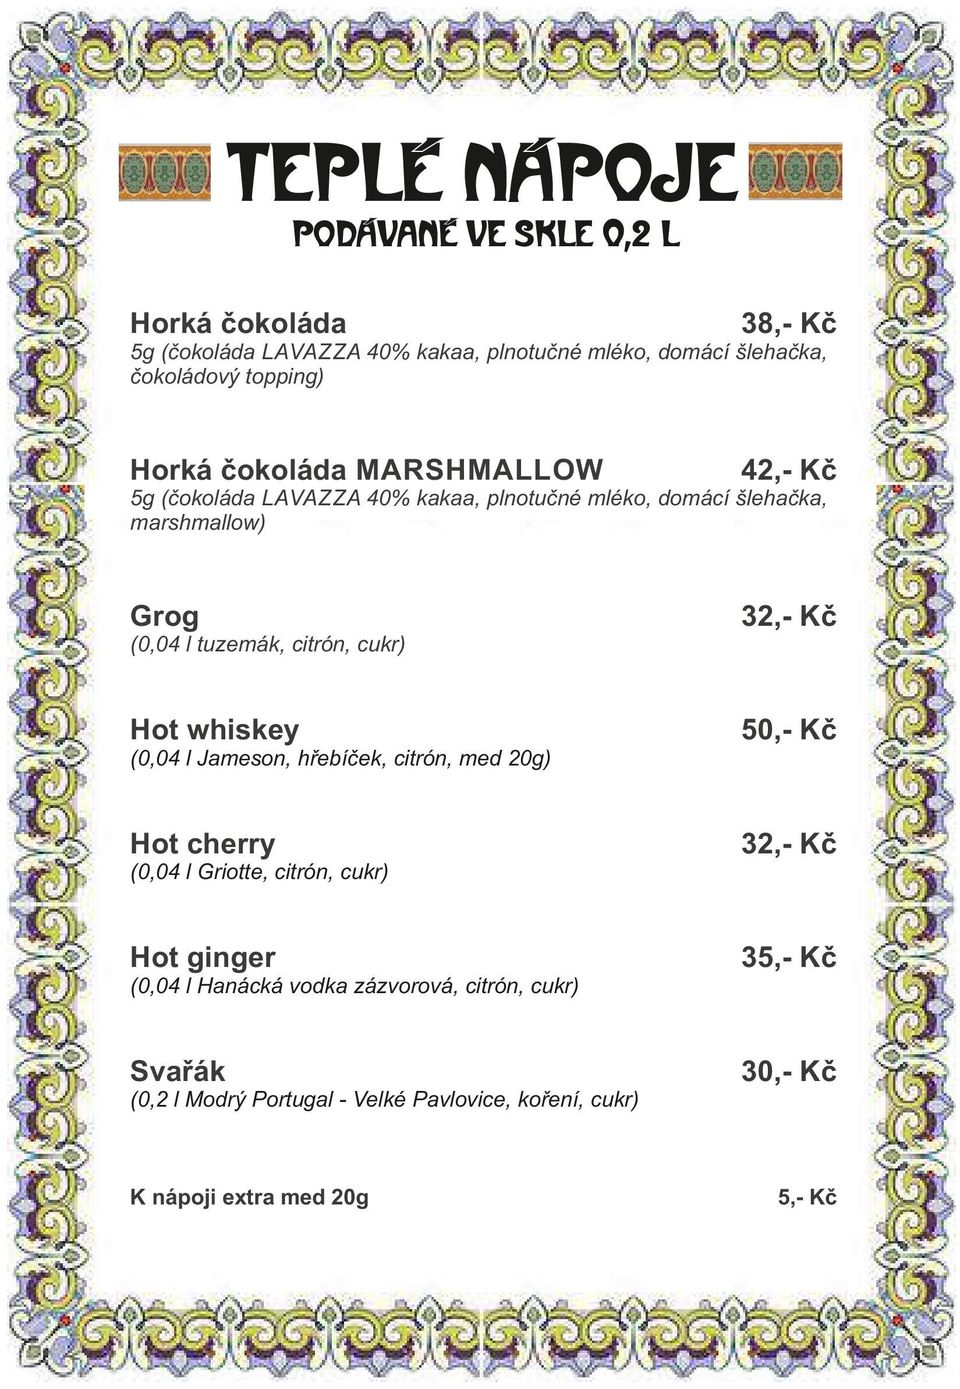 l tuzemák, citrón, cukr) Hot whiskey (0,04 l Jameson, hřebíček, citrón, med 20g) Hot cherry (0,04 l Griotte, citrón, cukr) Hot ginger